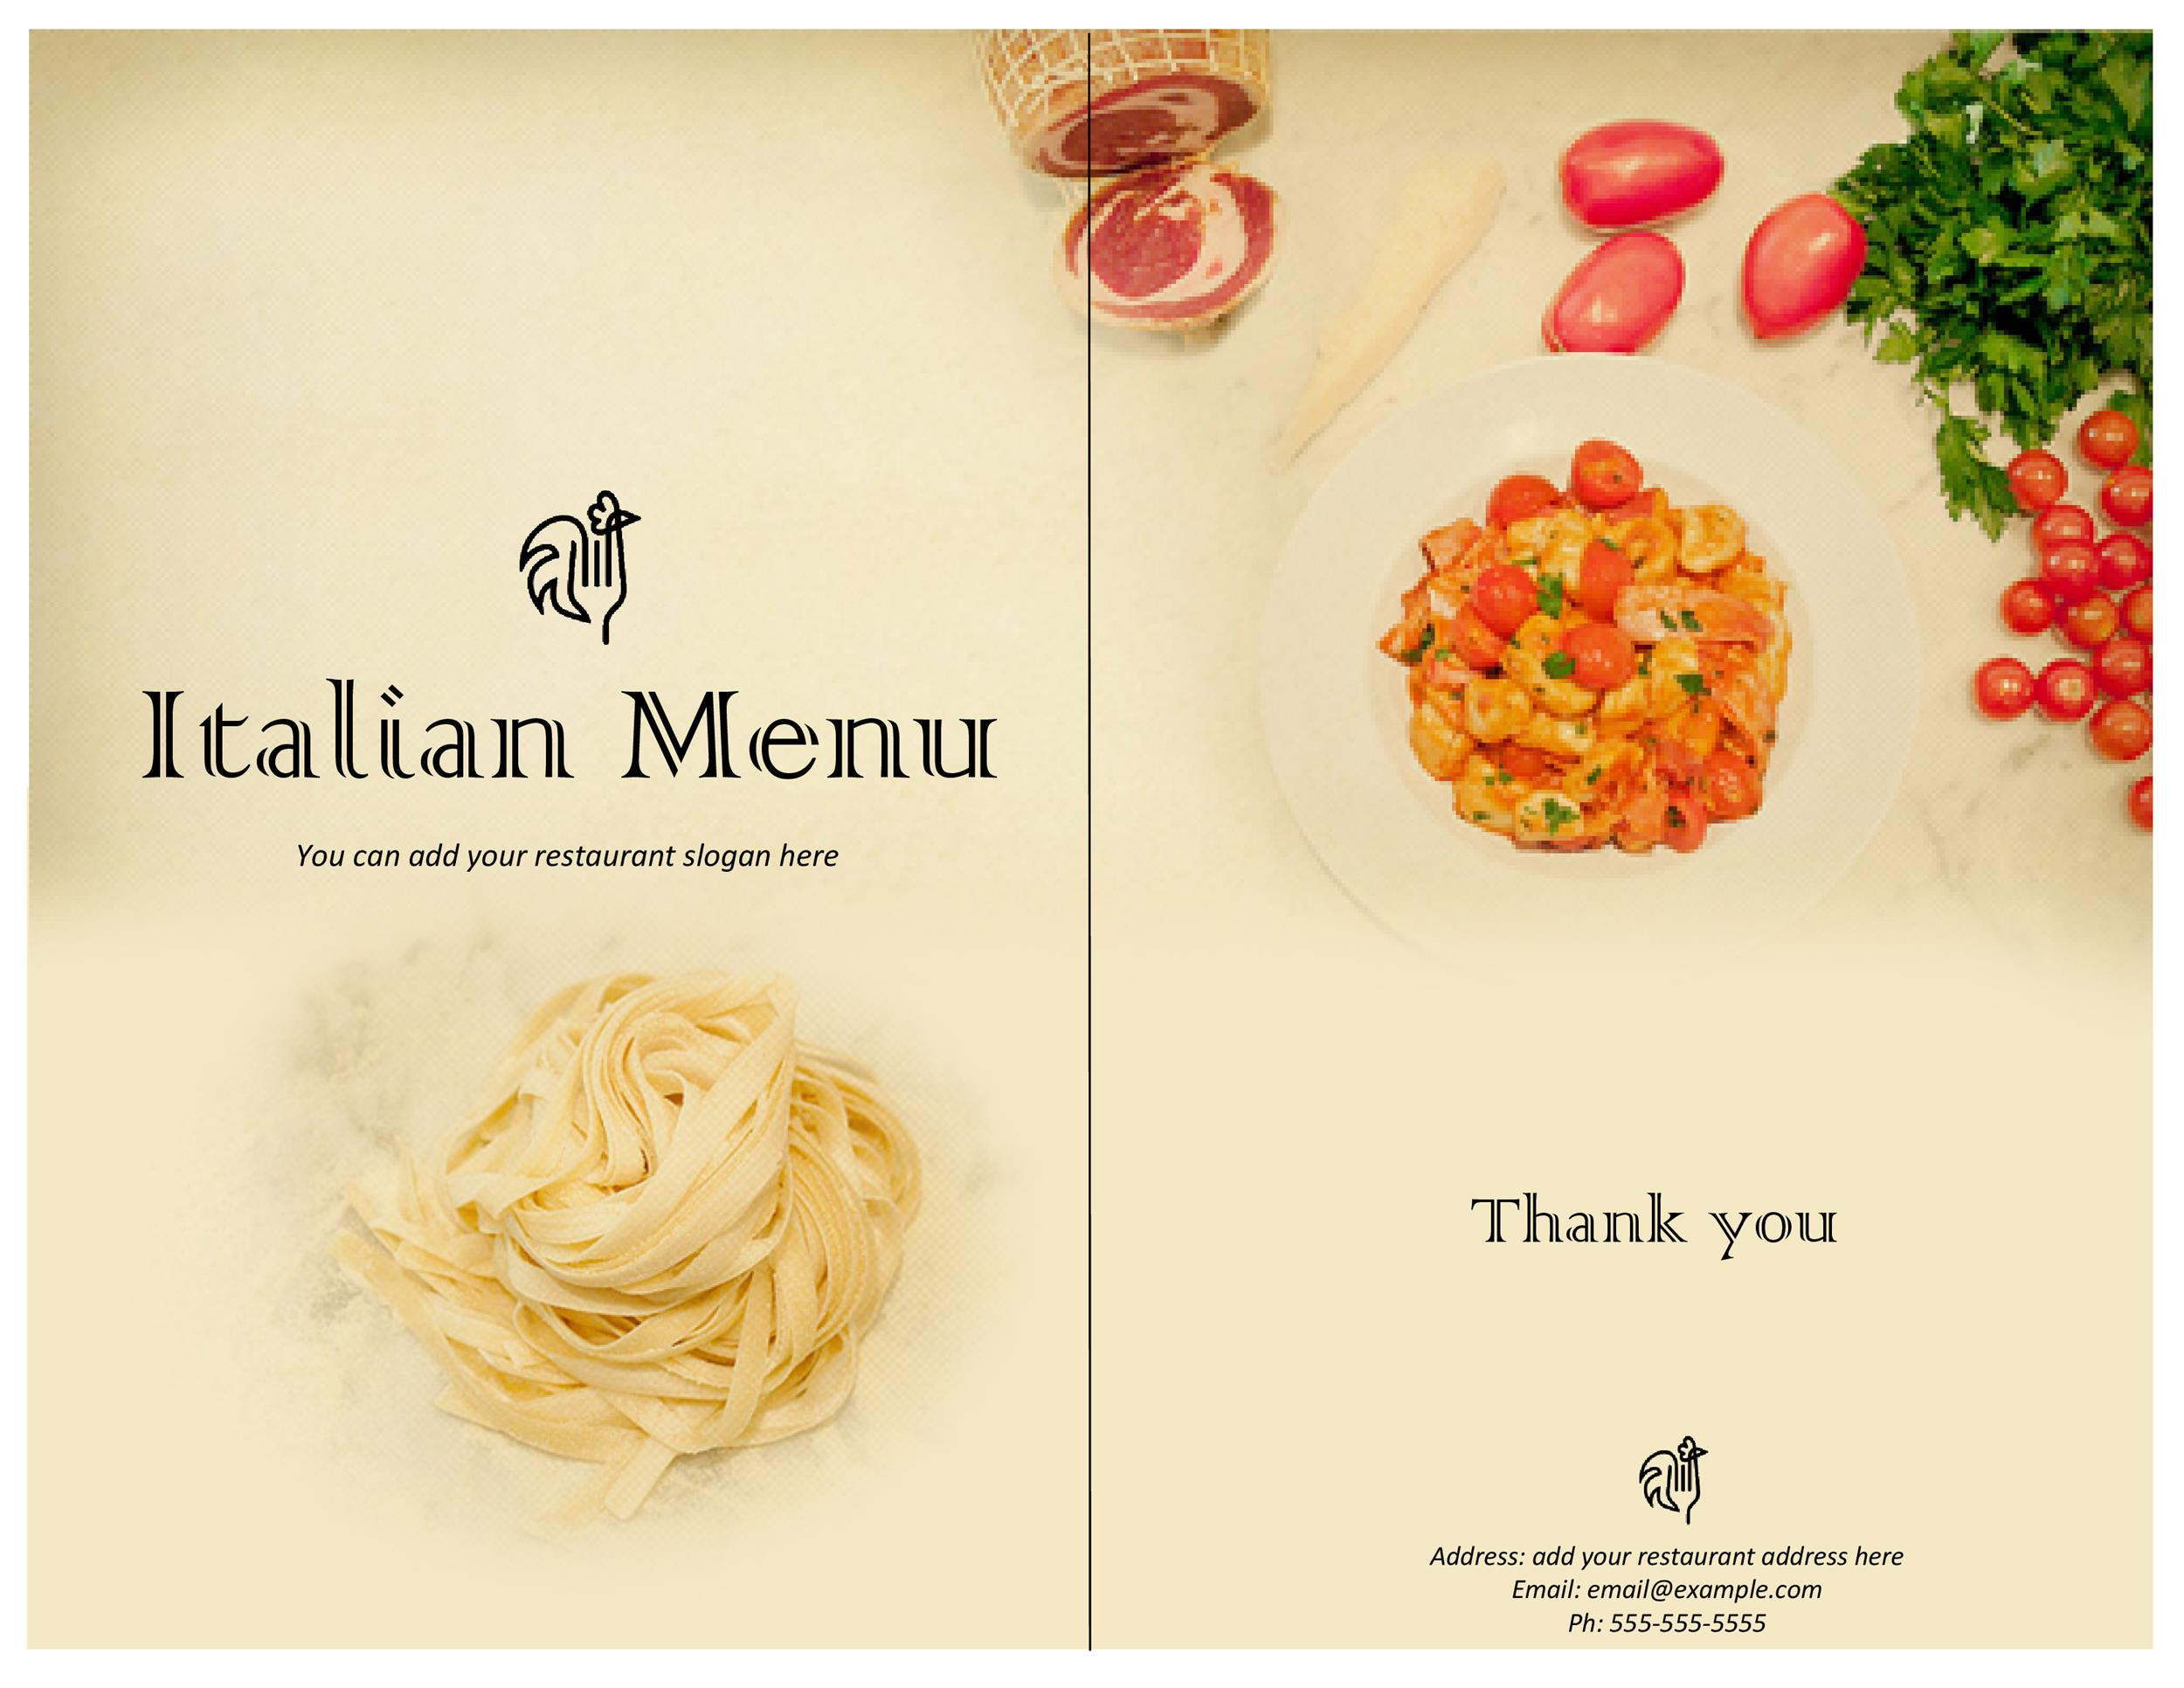 Restaurant Menu Templates Designs Template Lab - Take out menu template free